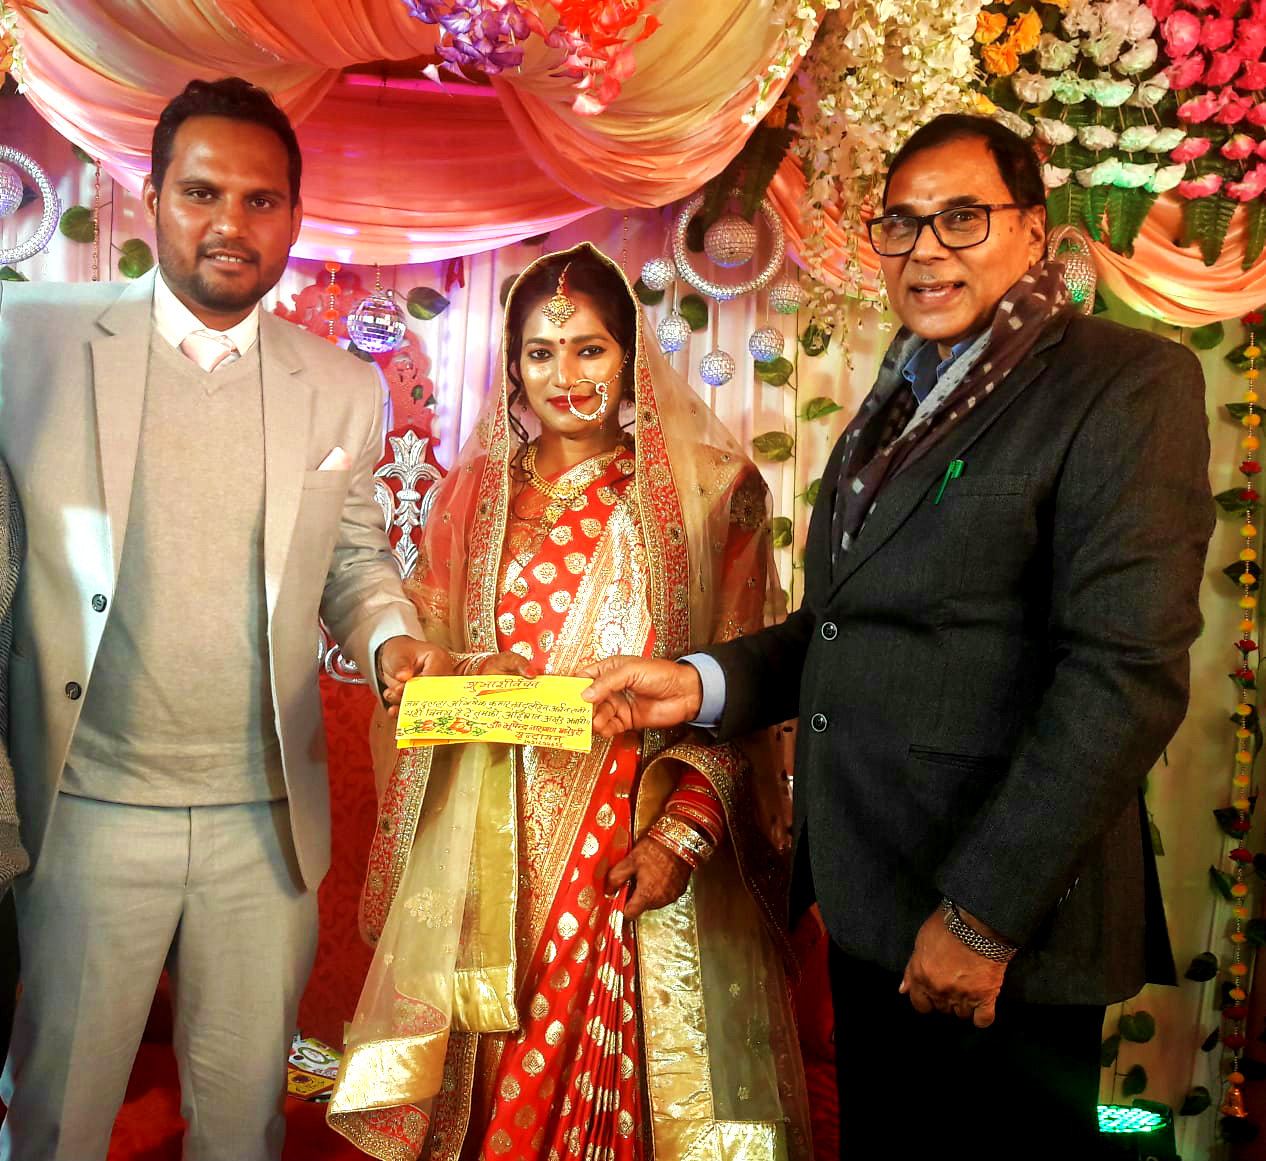 Dr.Madhepuri giving blessings to a newly wed couple Abhishek & Archana.